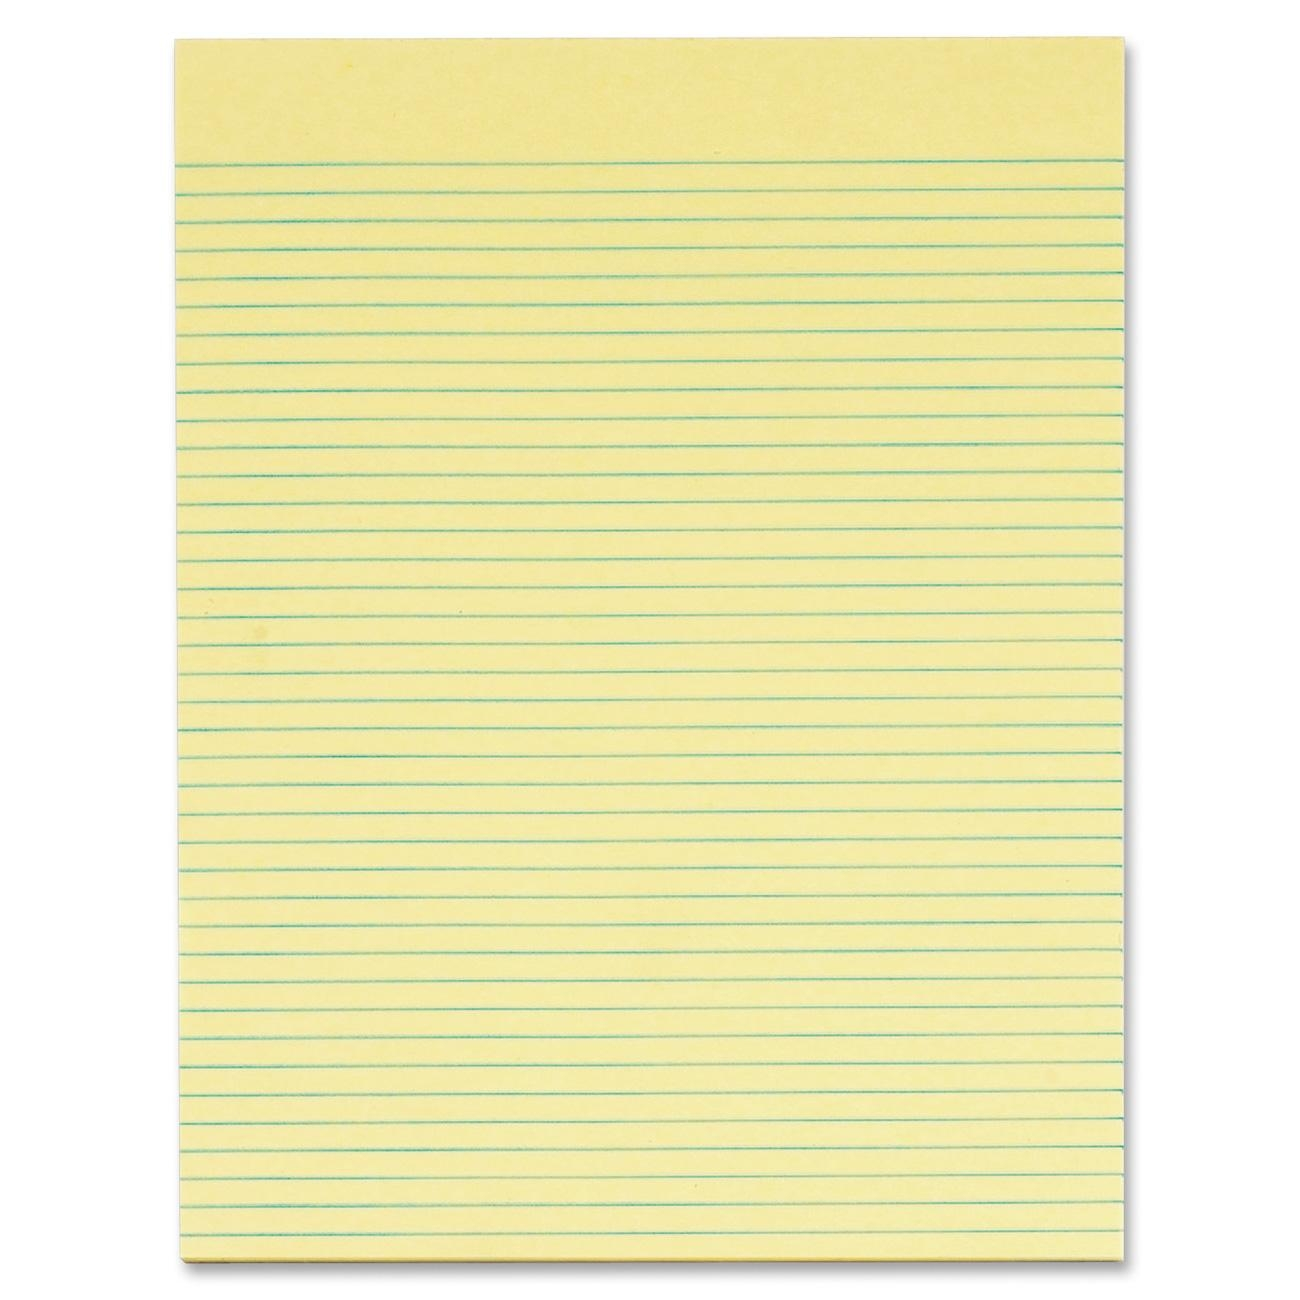 Tops Glue Top Wide Ruled Legal Pad   50 Sheet   Legal/narrow Ruled   Letter  8.50  Loose Leaf Paper Background